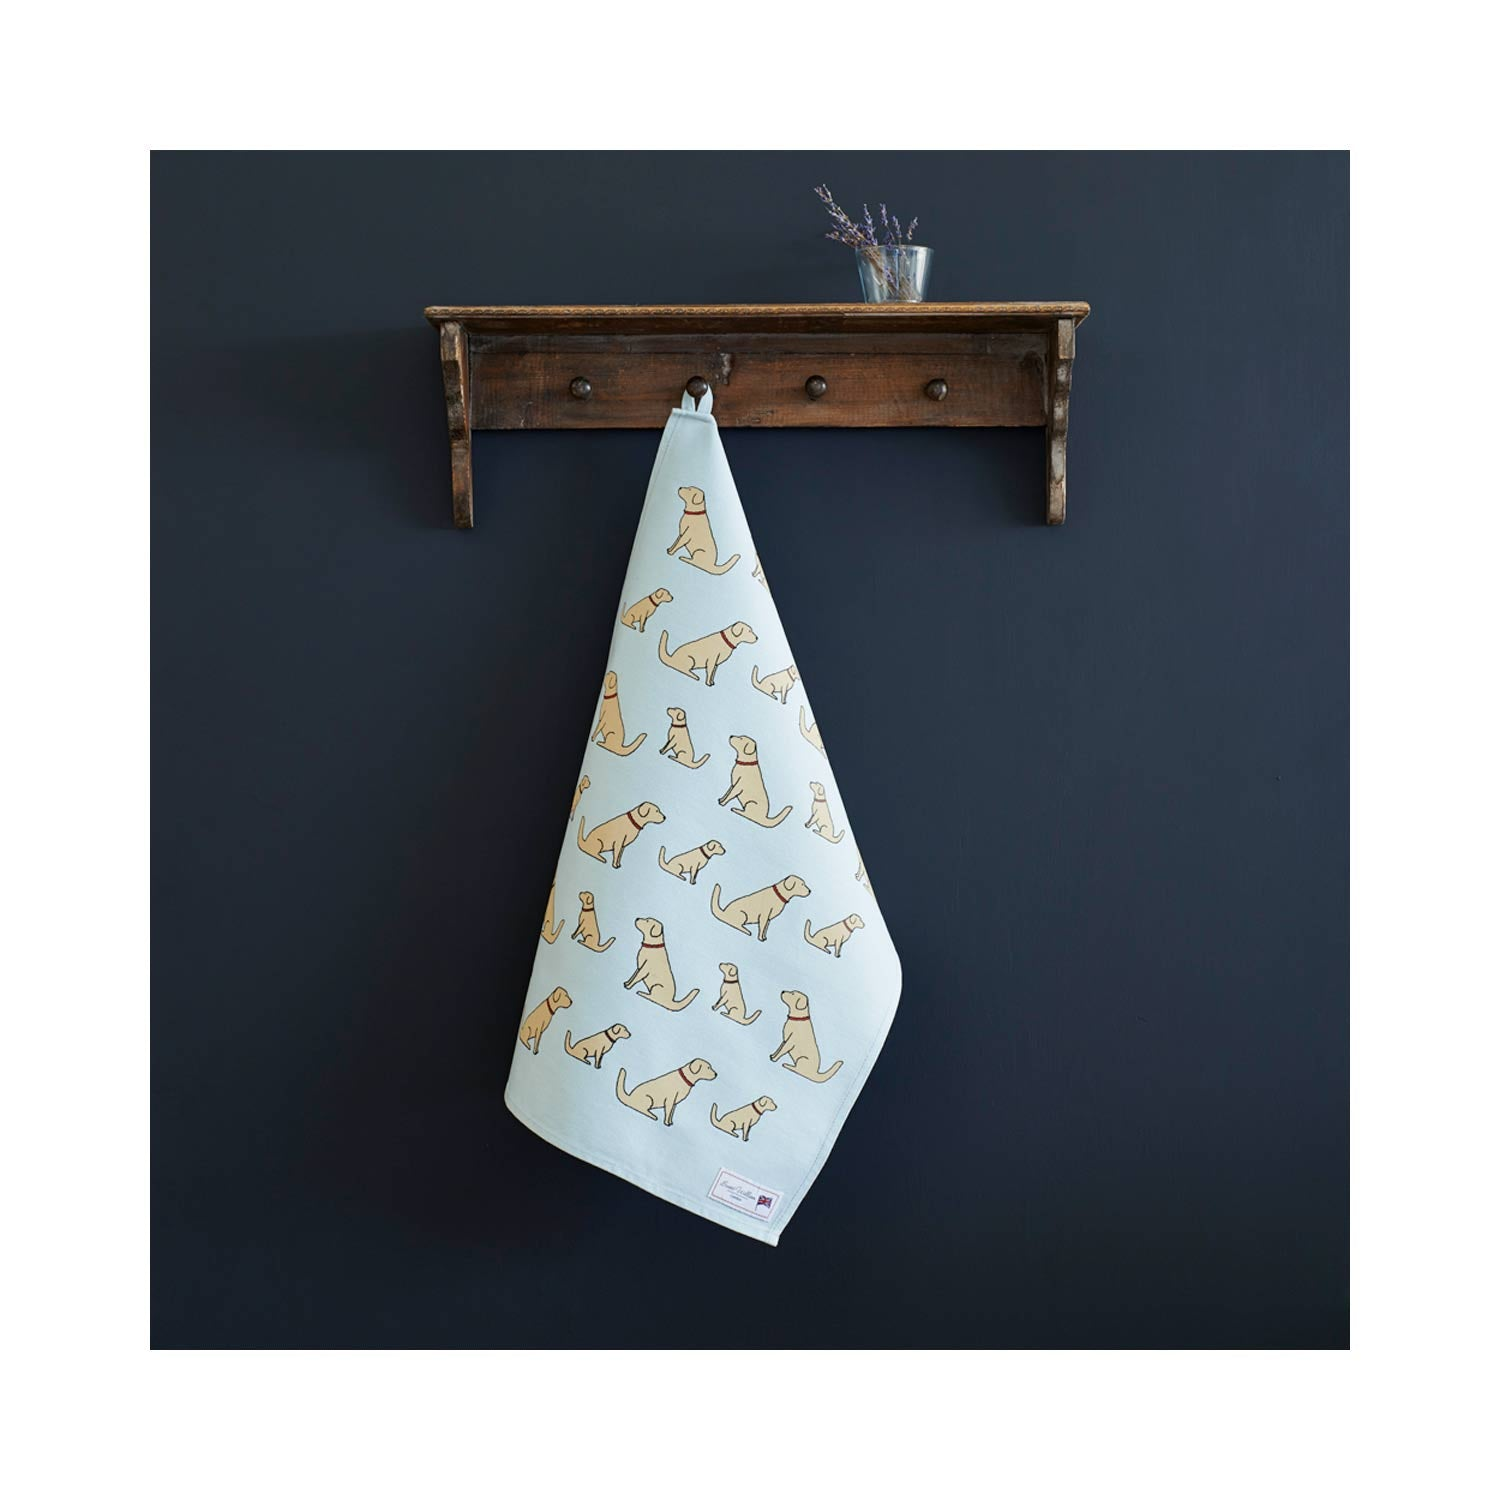 Dog Lover Gifts - Dog Krazy Gifts – noah the golden retriever Organic Tea Towel - part of the Sweet William range available from www.DogKrazyGifts.co.uk